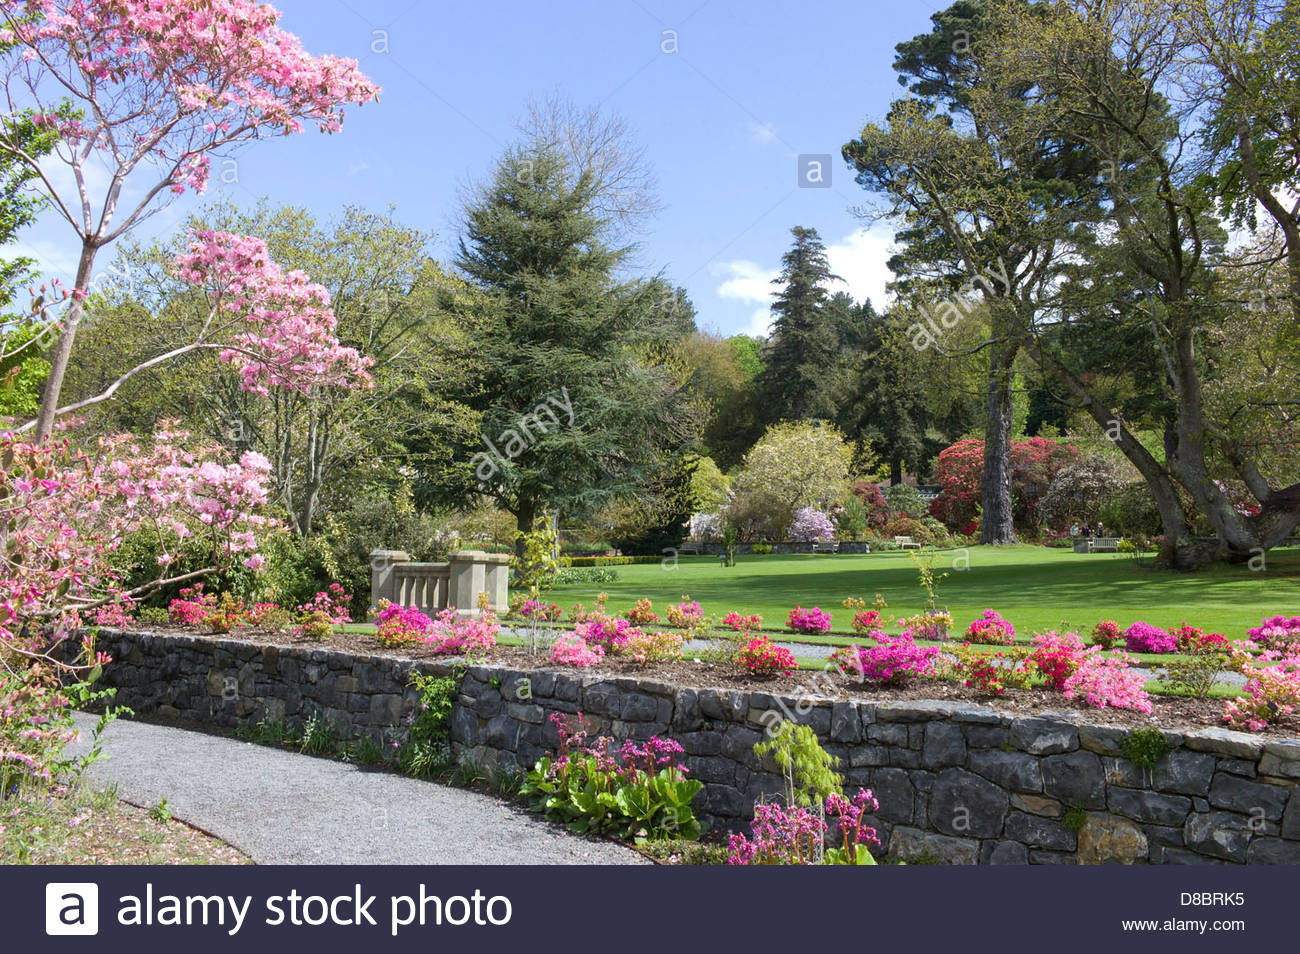 National Trust, Bodnant Gardens, Conwy Valley, North Wales, UK Stock Photo